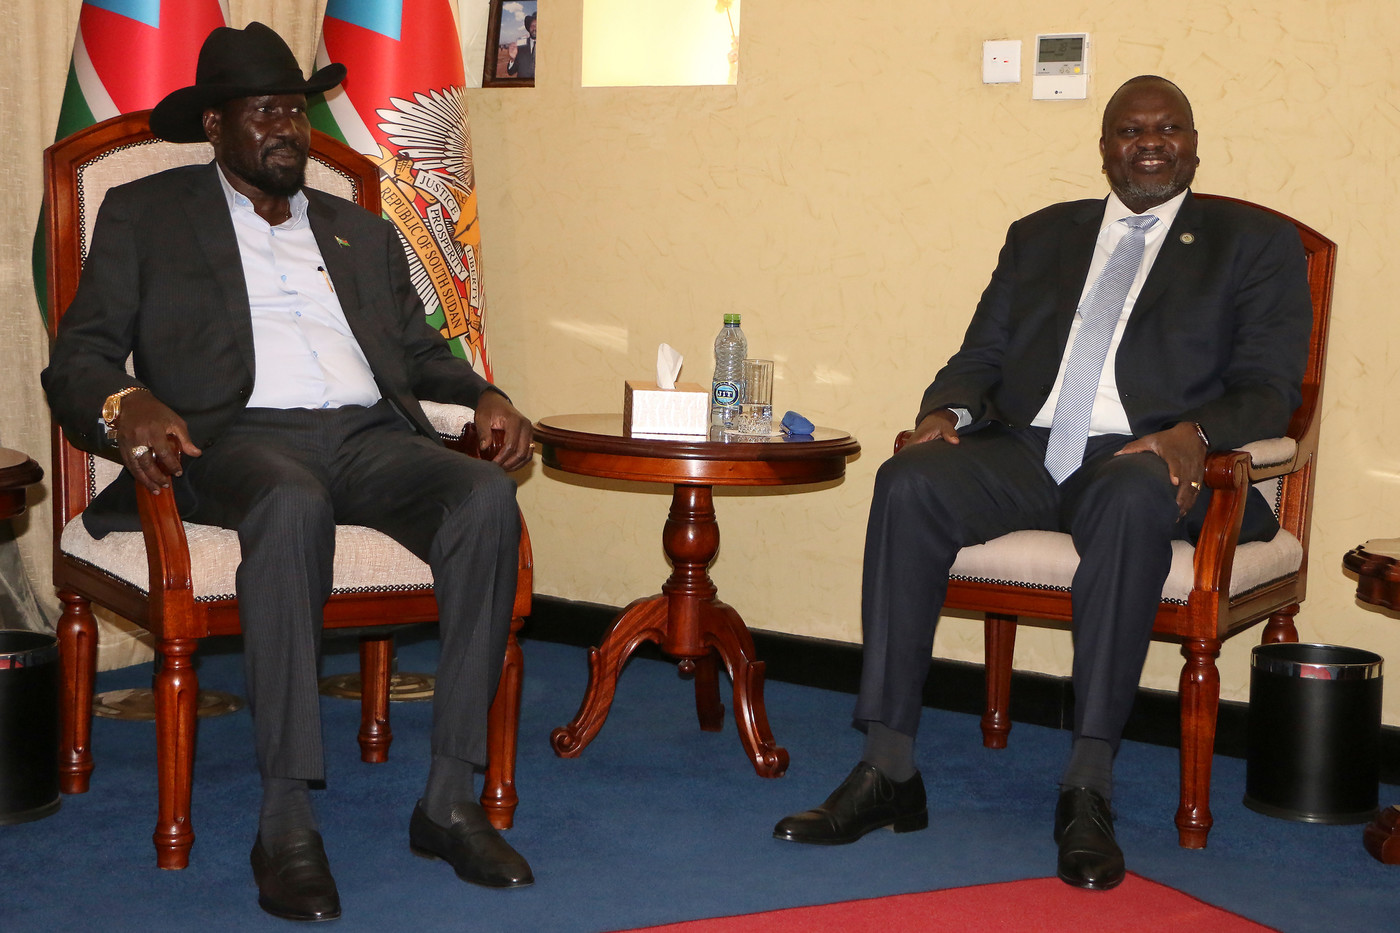 Union government re-formed in South Sudan